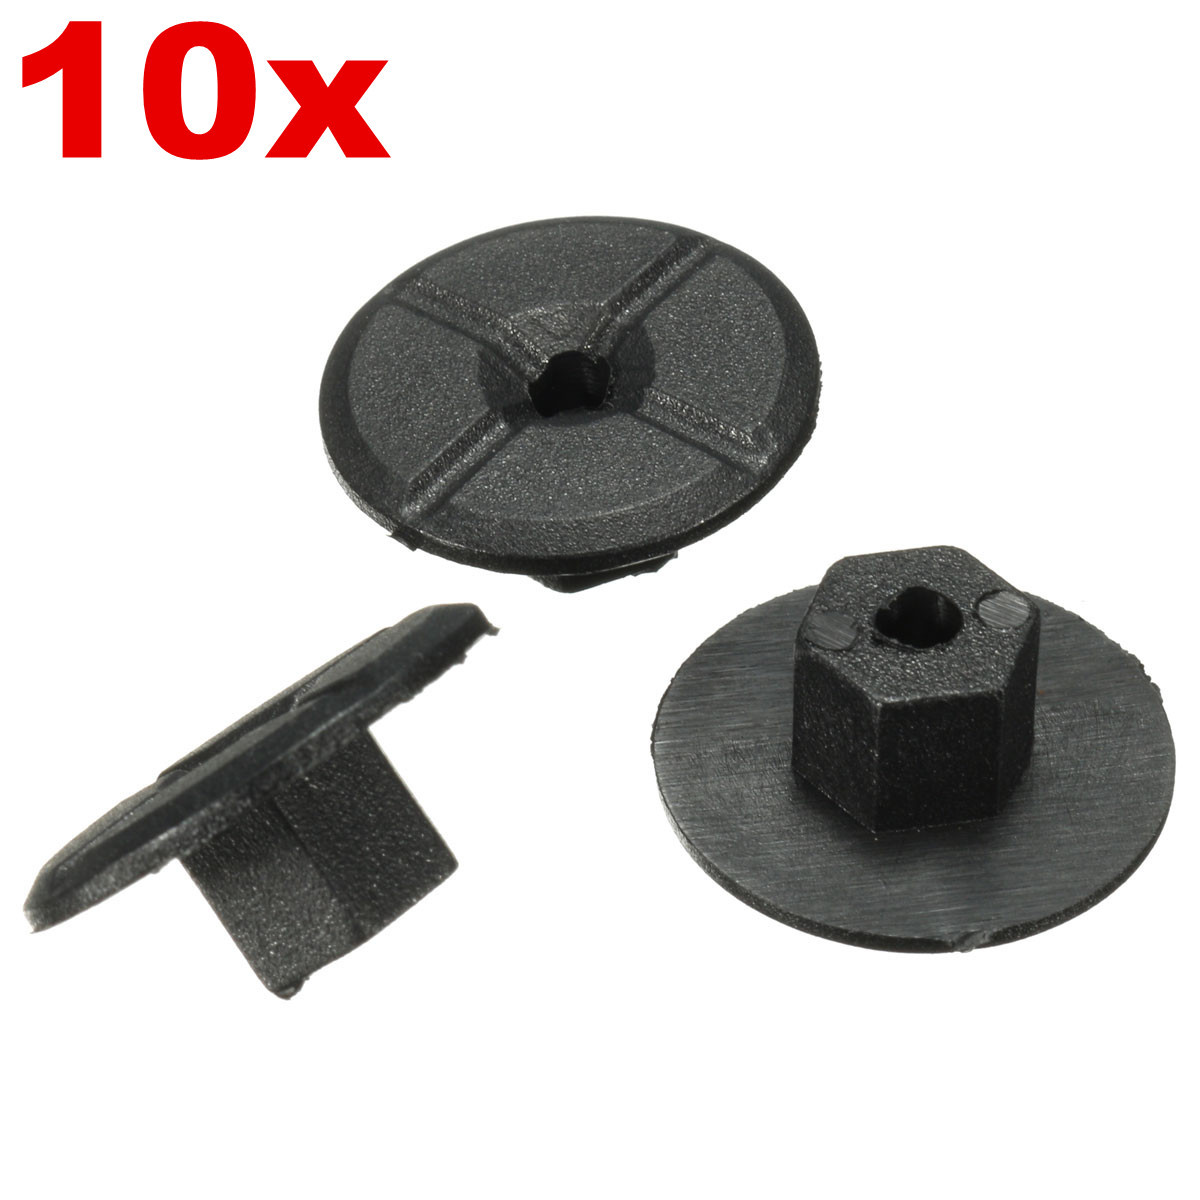 10x Nuts For Saab Plastic Unthreaded 4mm Diameter Hole Bumpers Wheel Arch Lining